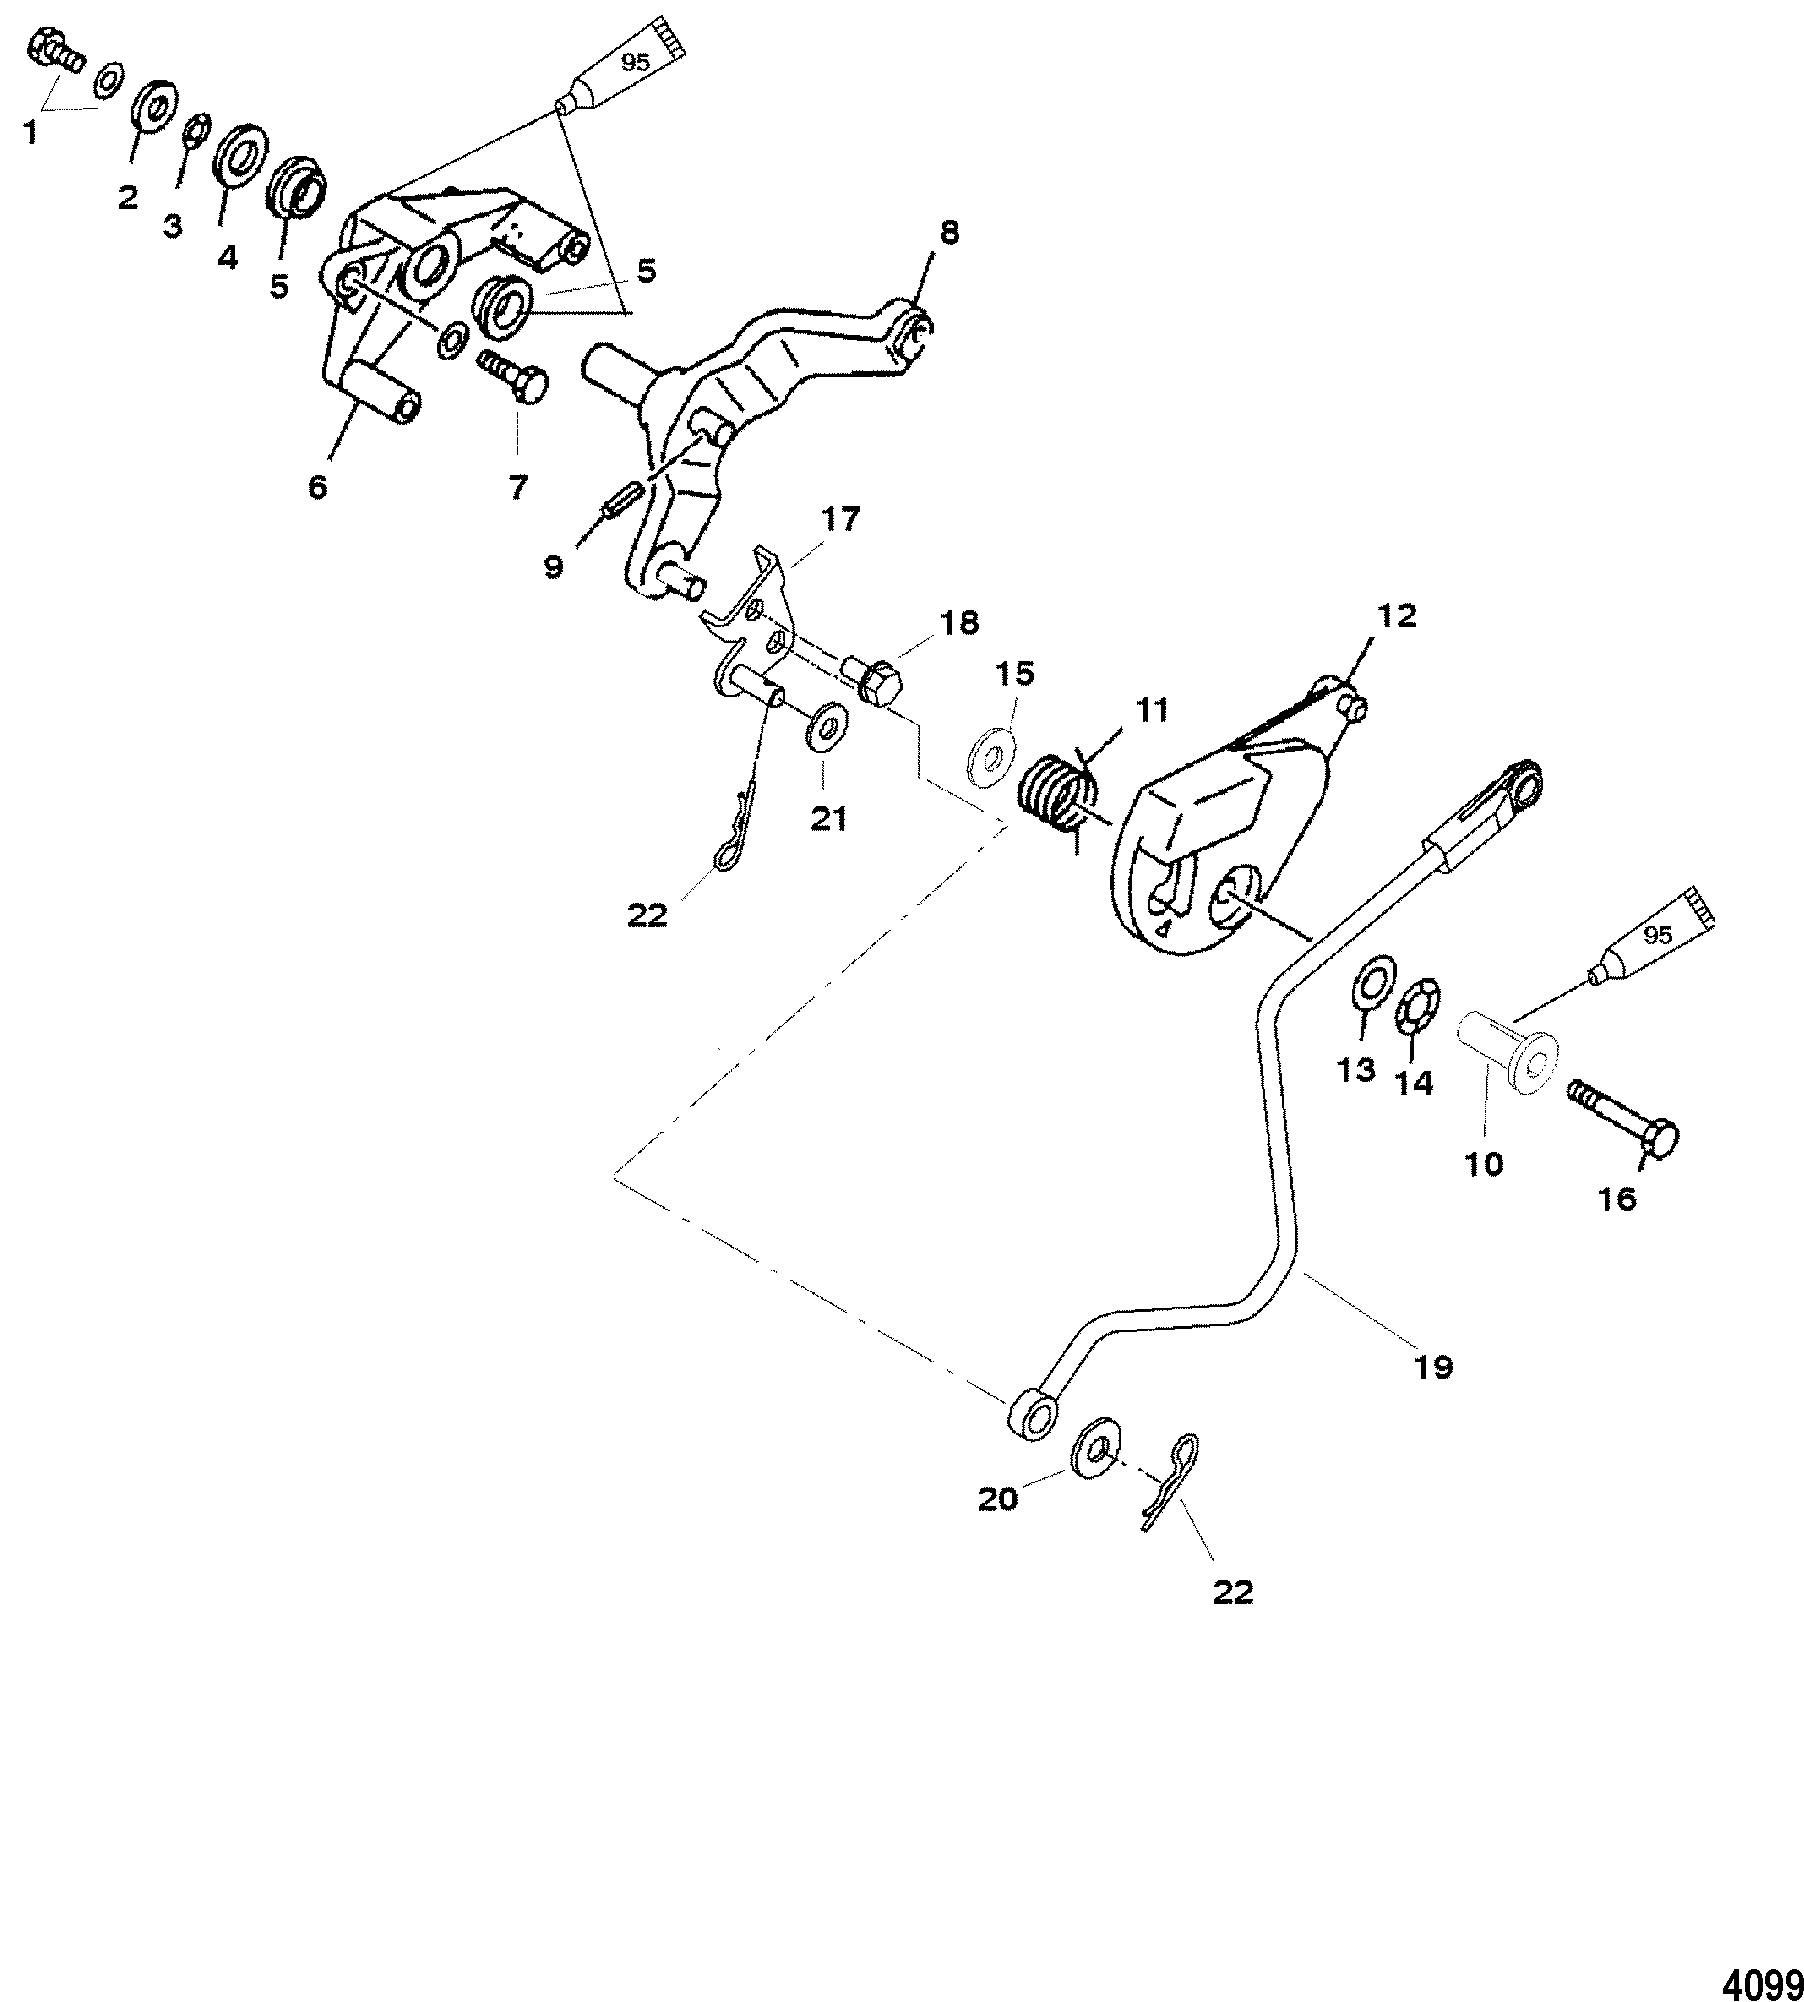 Edelbrock Carburetor Vacuum Hose Diagram